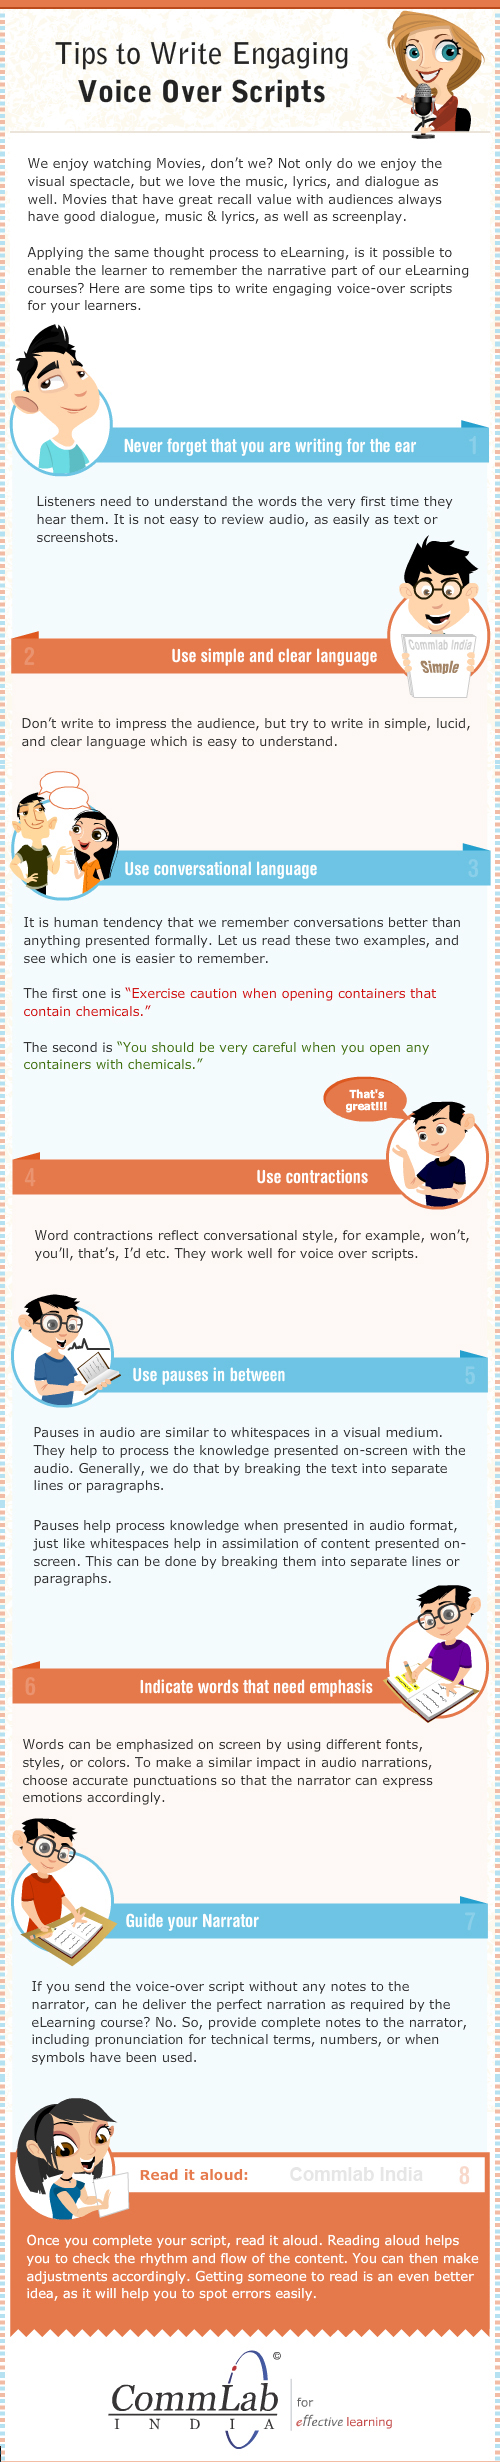 Infographic: Voice Over Scripts in E-Learning or PowerPoint Presentations